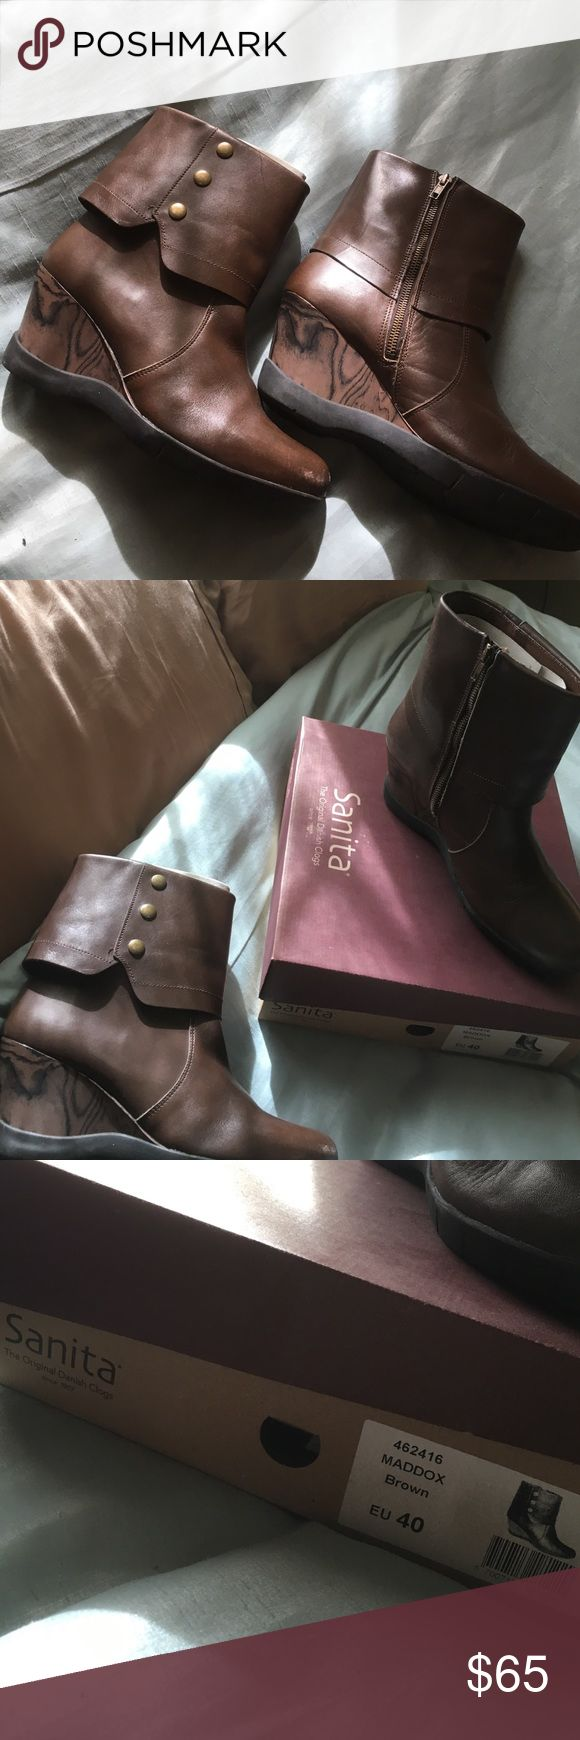 Sanita Maddox Brown Leather Boot EUC Brown Wedge Boot from Sanita. Inner zipper and outer button detail. Minor scuffs on toes, would probably disappear with some shoe polish. Sprayed with leather protection prior to wear. Little to no sole wear. Comes with all original packaging. Sanita Shoes Heeled Boots